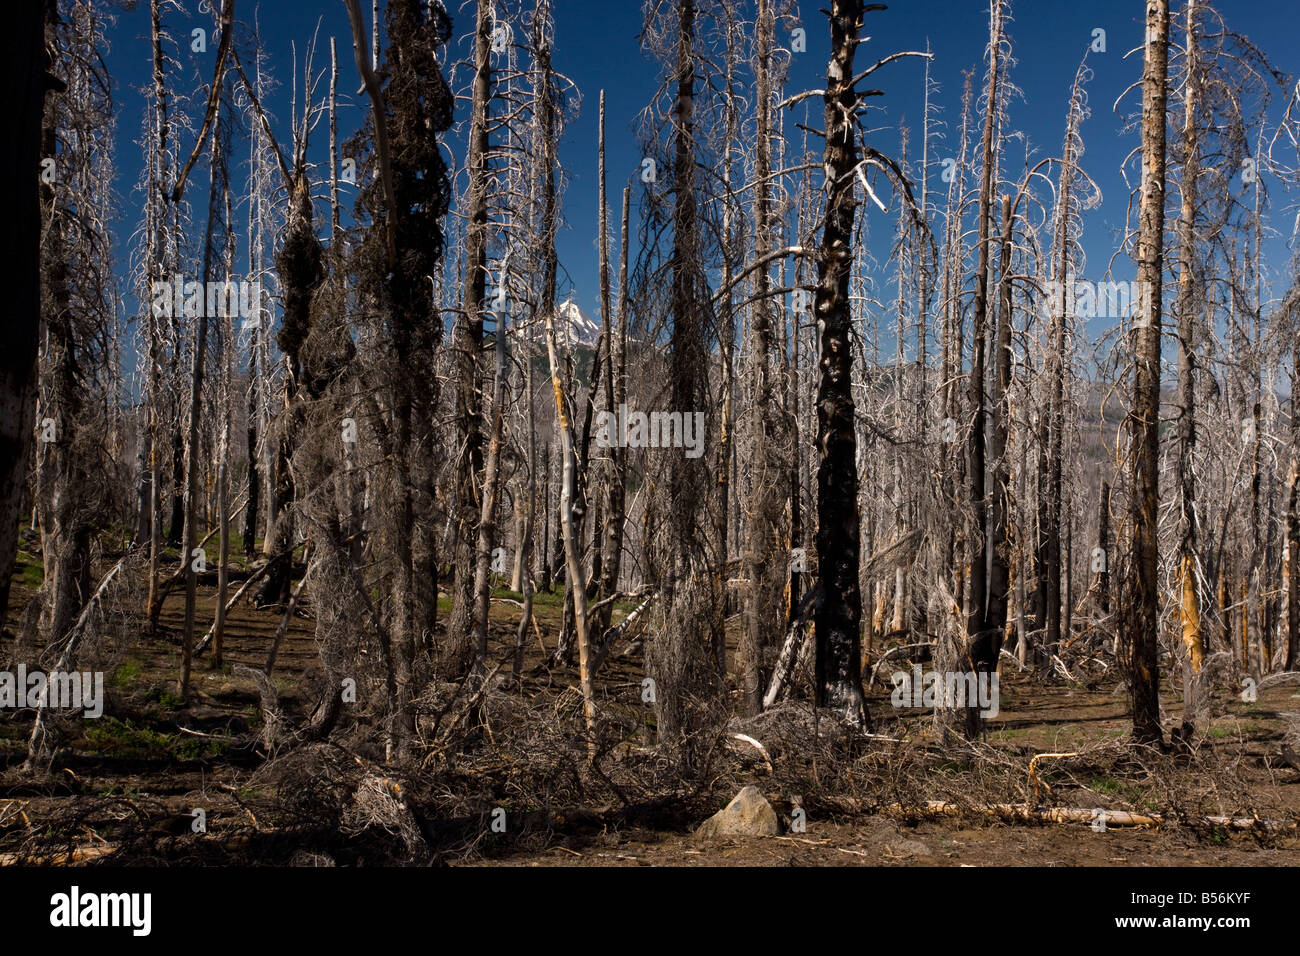 Badly burnt area of Lodgepole Pines Pinus contorta with Bear Grass 5 years after fire Three fingered Jack Cascades - Stock Image